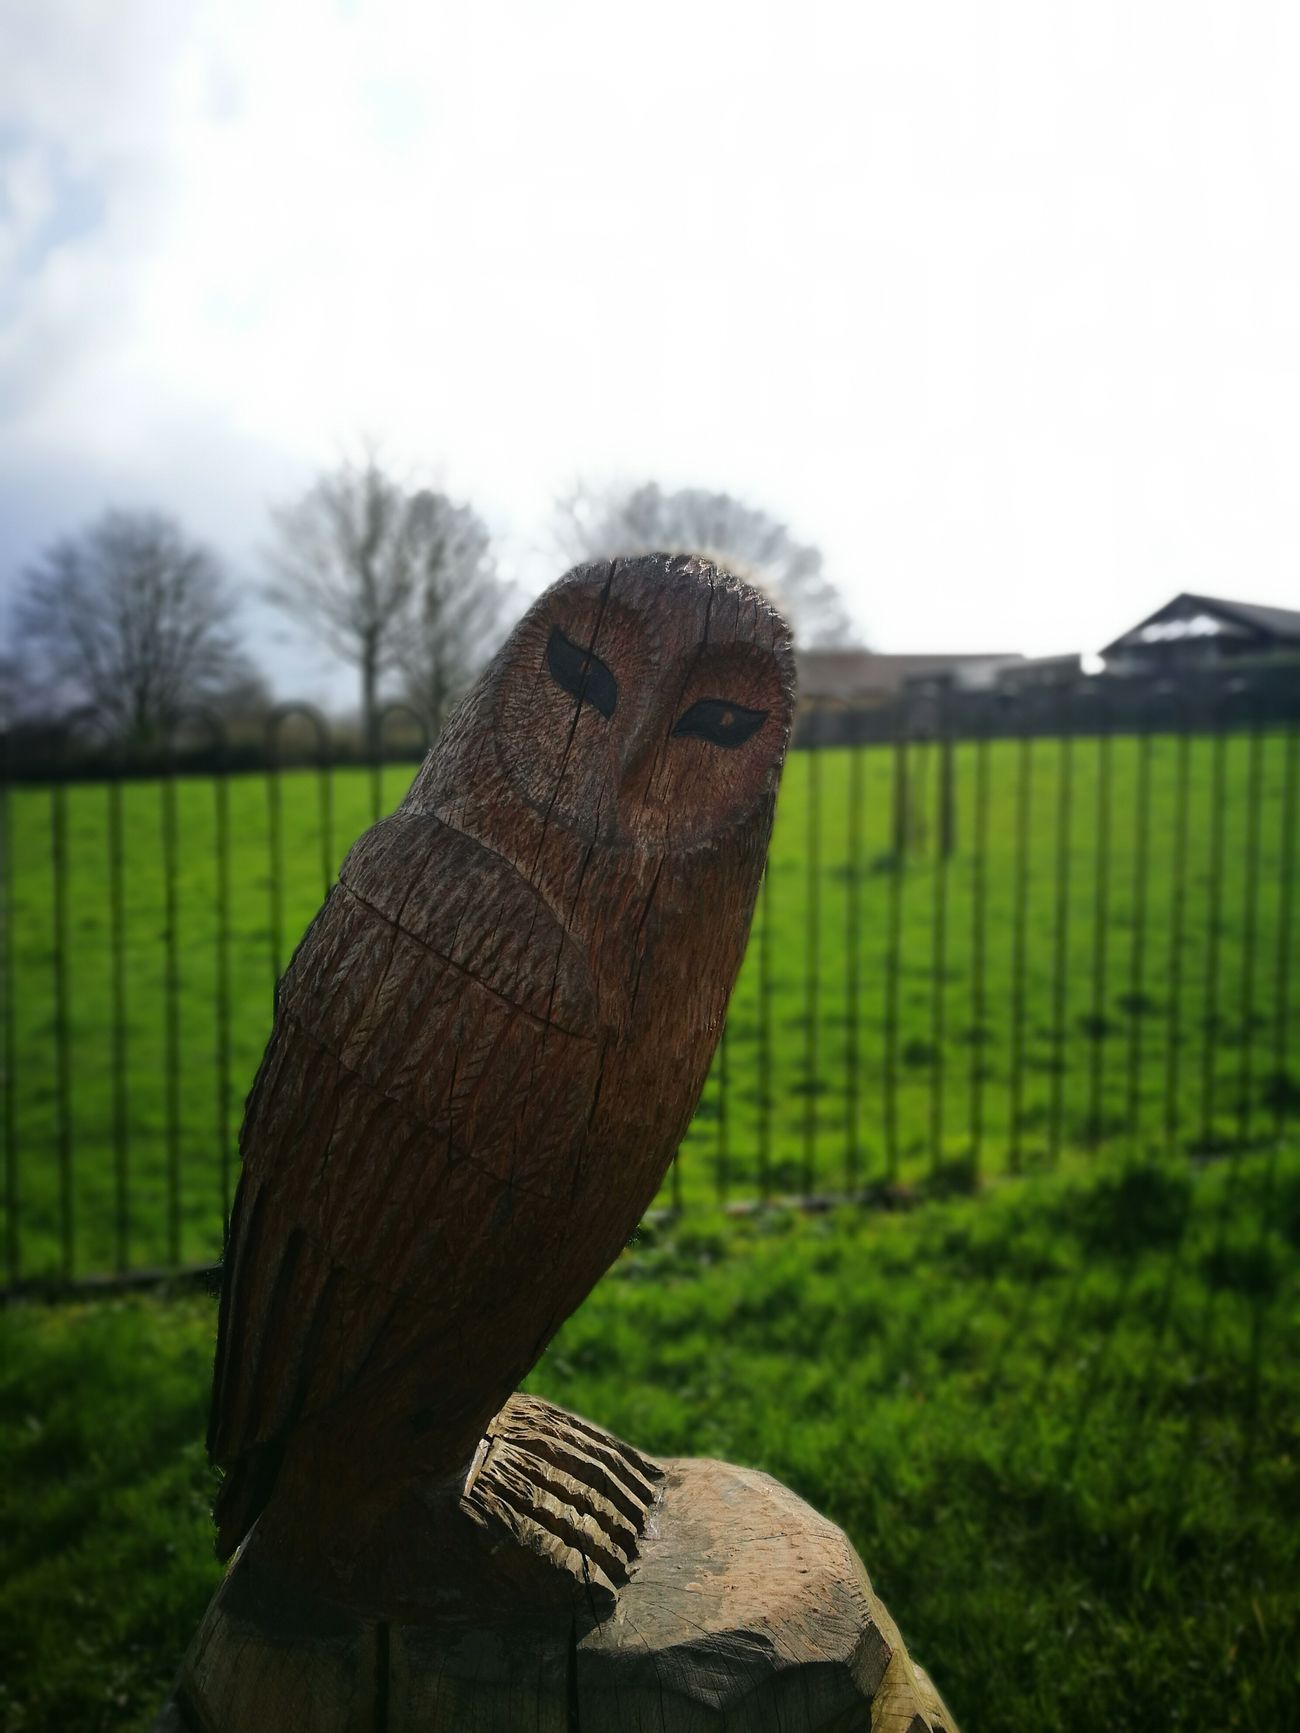 Statue Owl Wood Artistic Art Bokeh Outside Focus On Foreground Blurred Background HuaweiP9 Oo